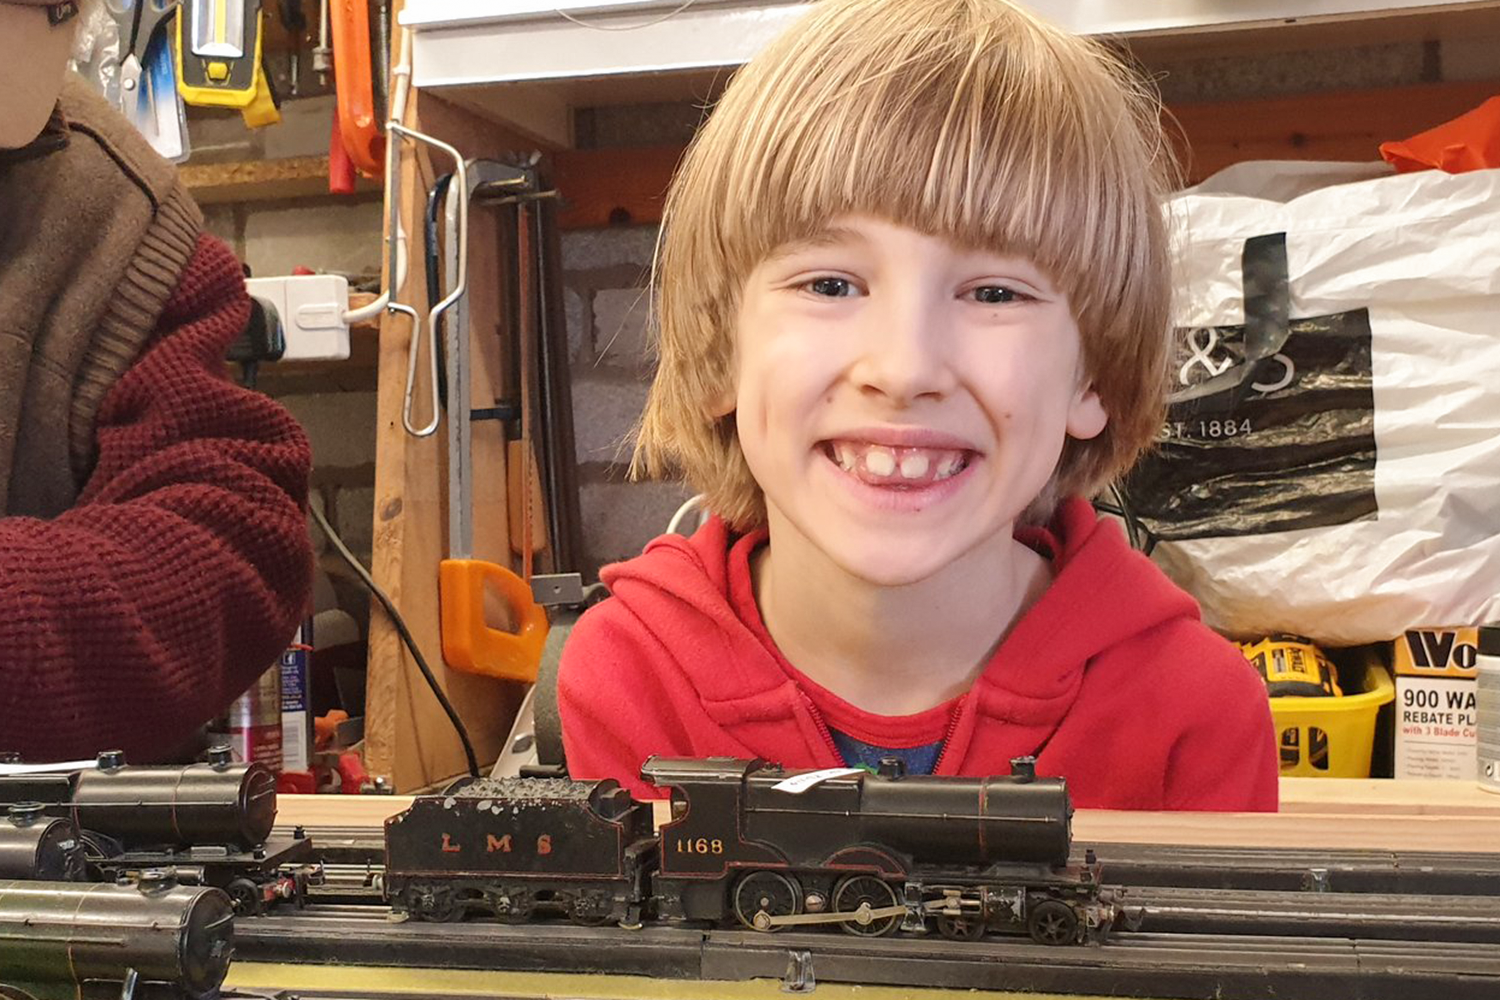 Toby smiling with a model train in front of him